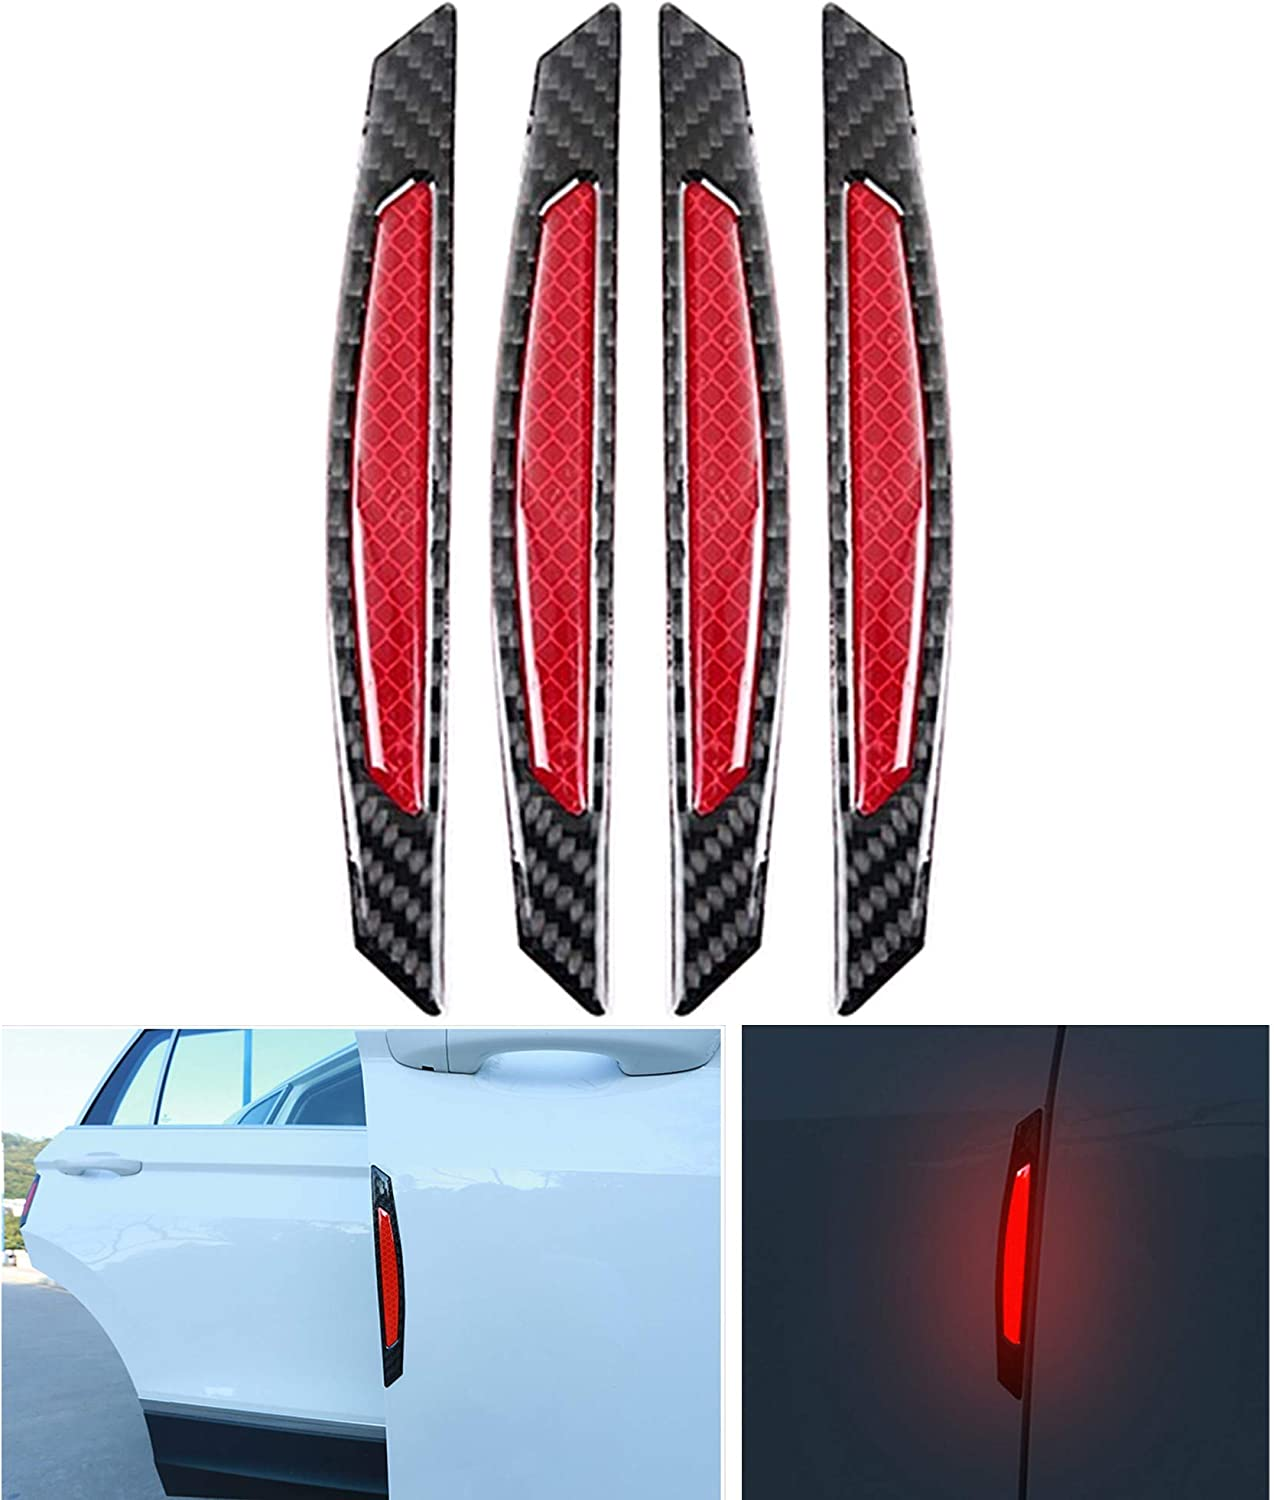 2pcs Car Door Edge Guard Reflective Sticker Tape Decal Safety Warning Acces Top